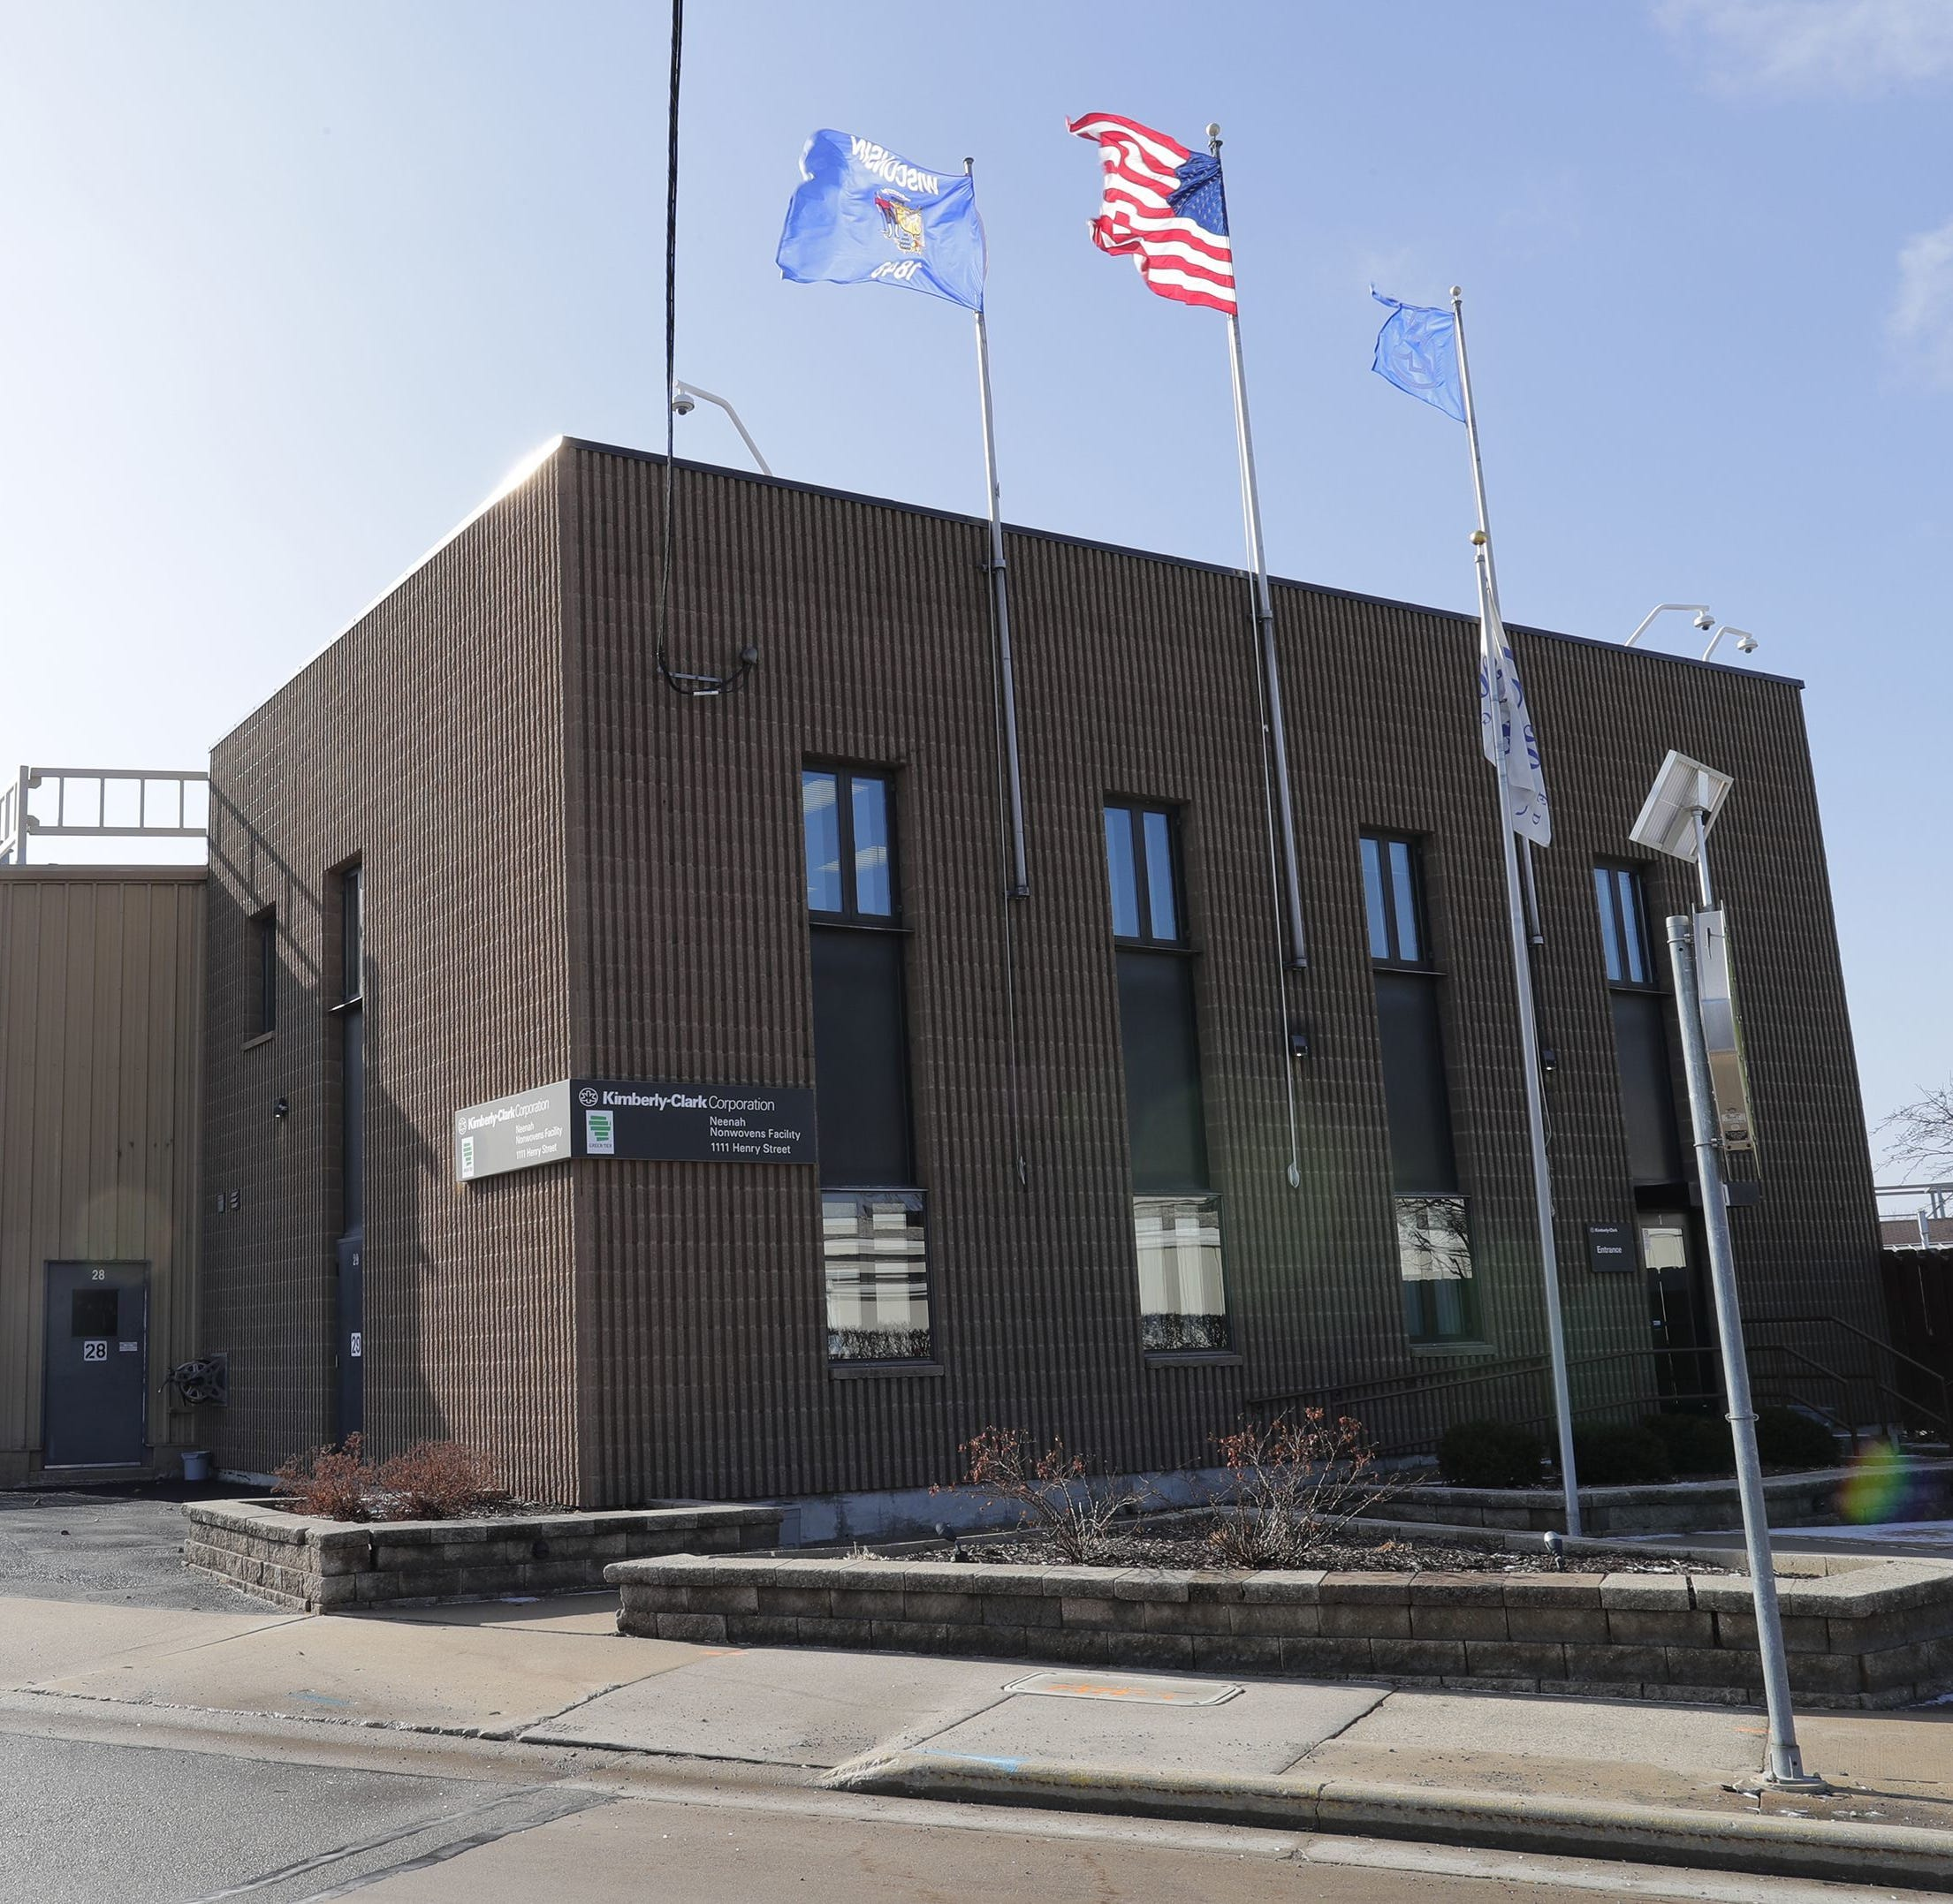 Kimberly-Clark deal: What do you think about the $70 million incentive package?